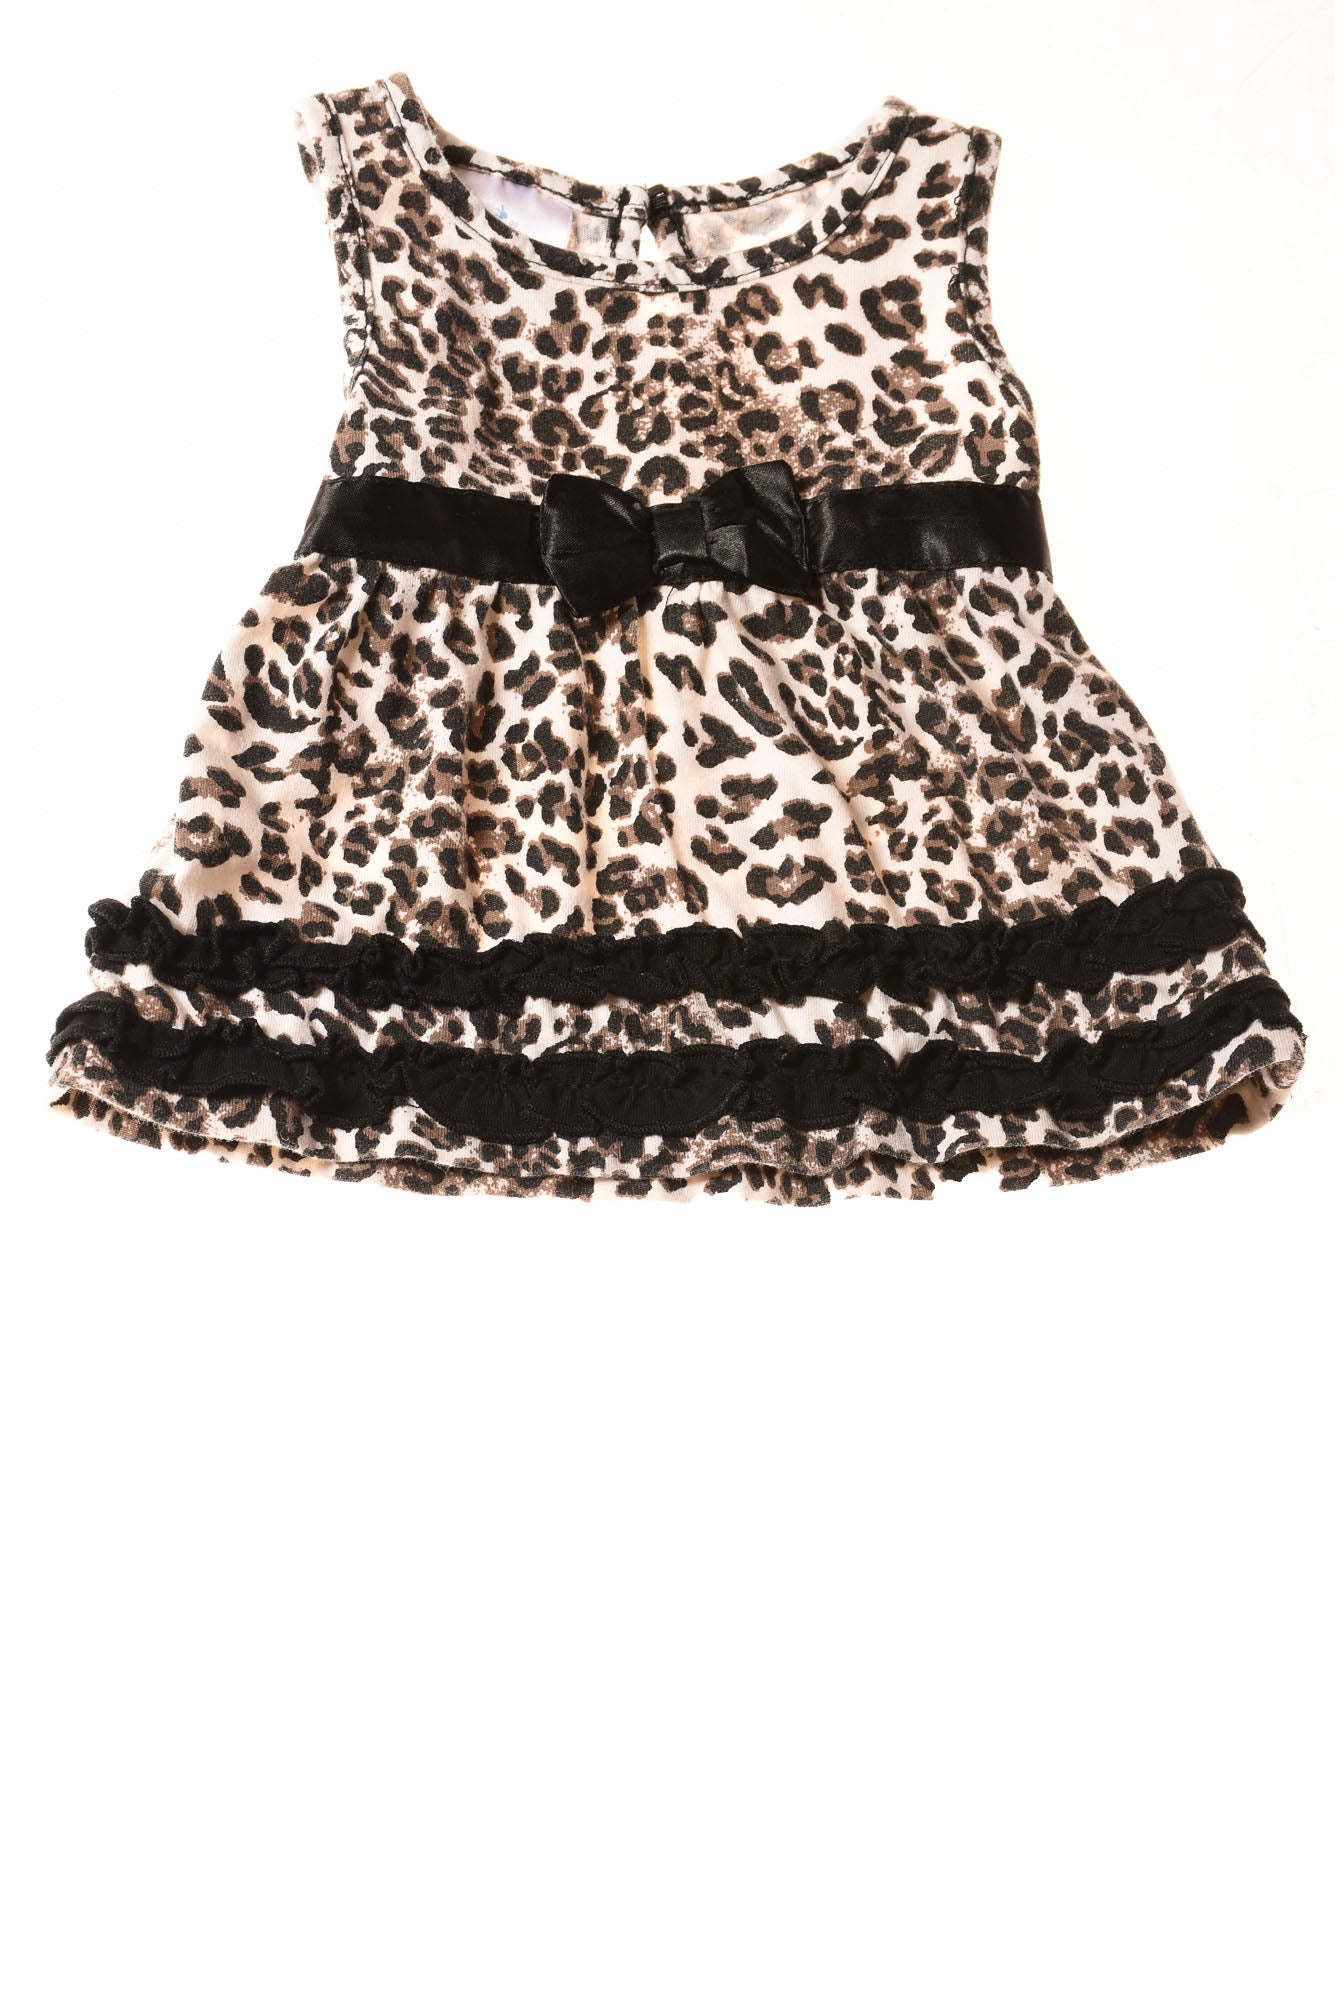 used small wonders baby girl s dress 0 3 months white black